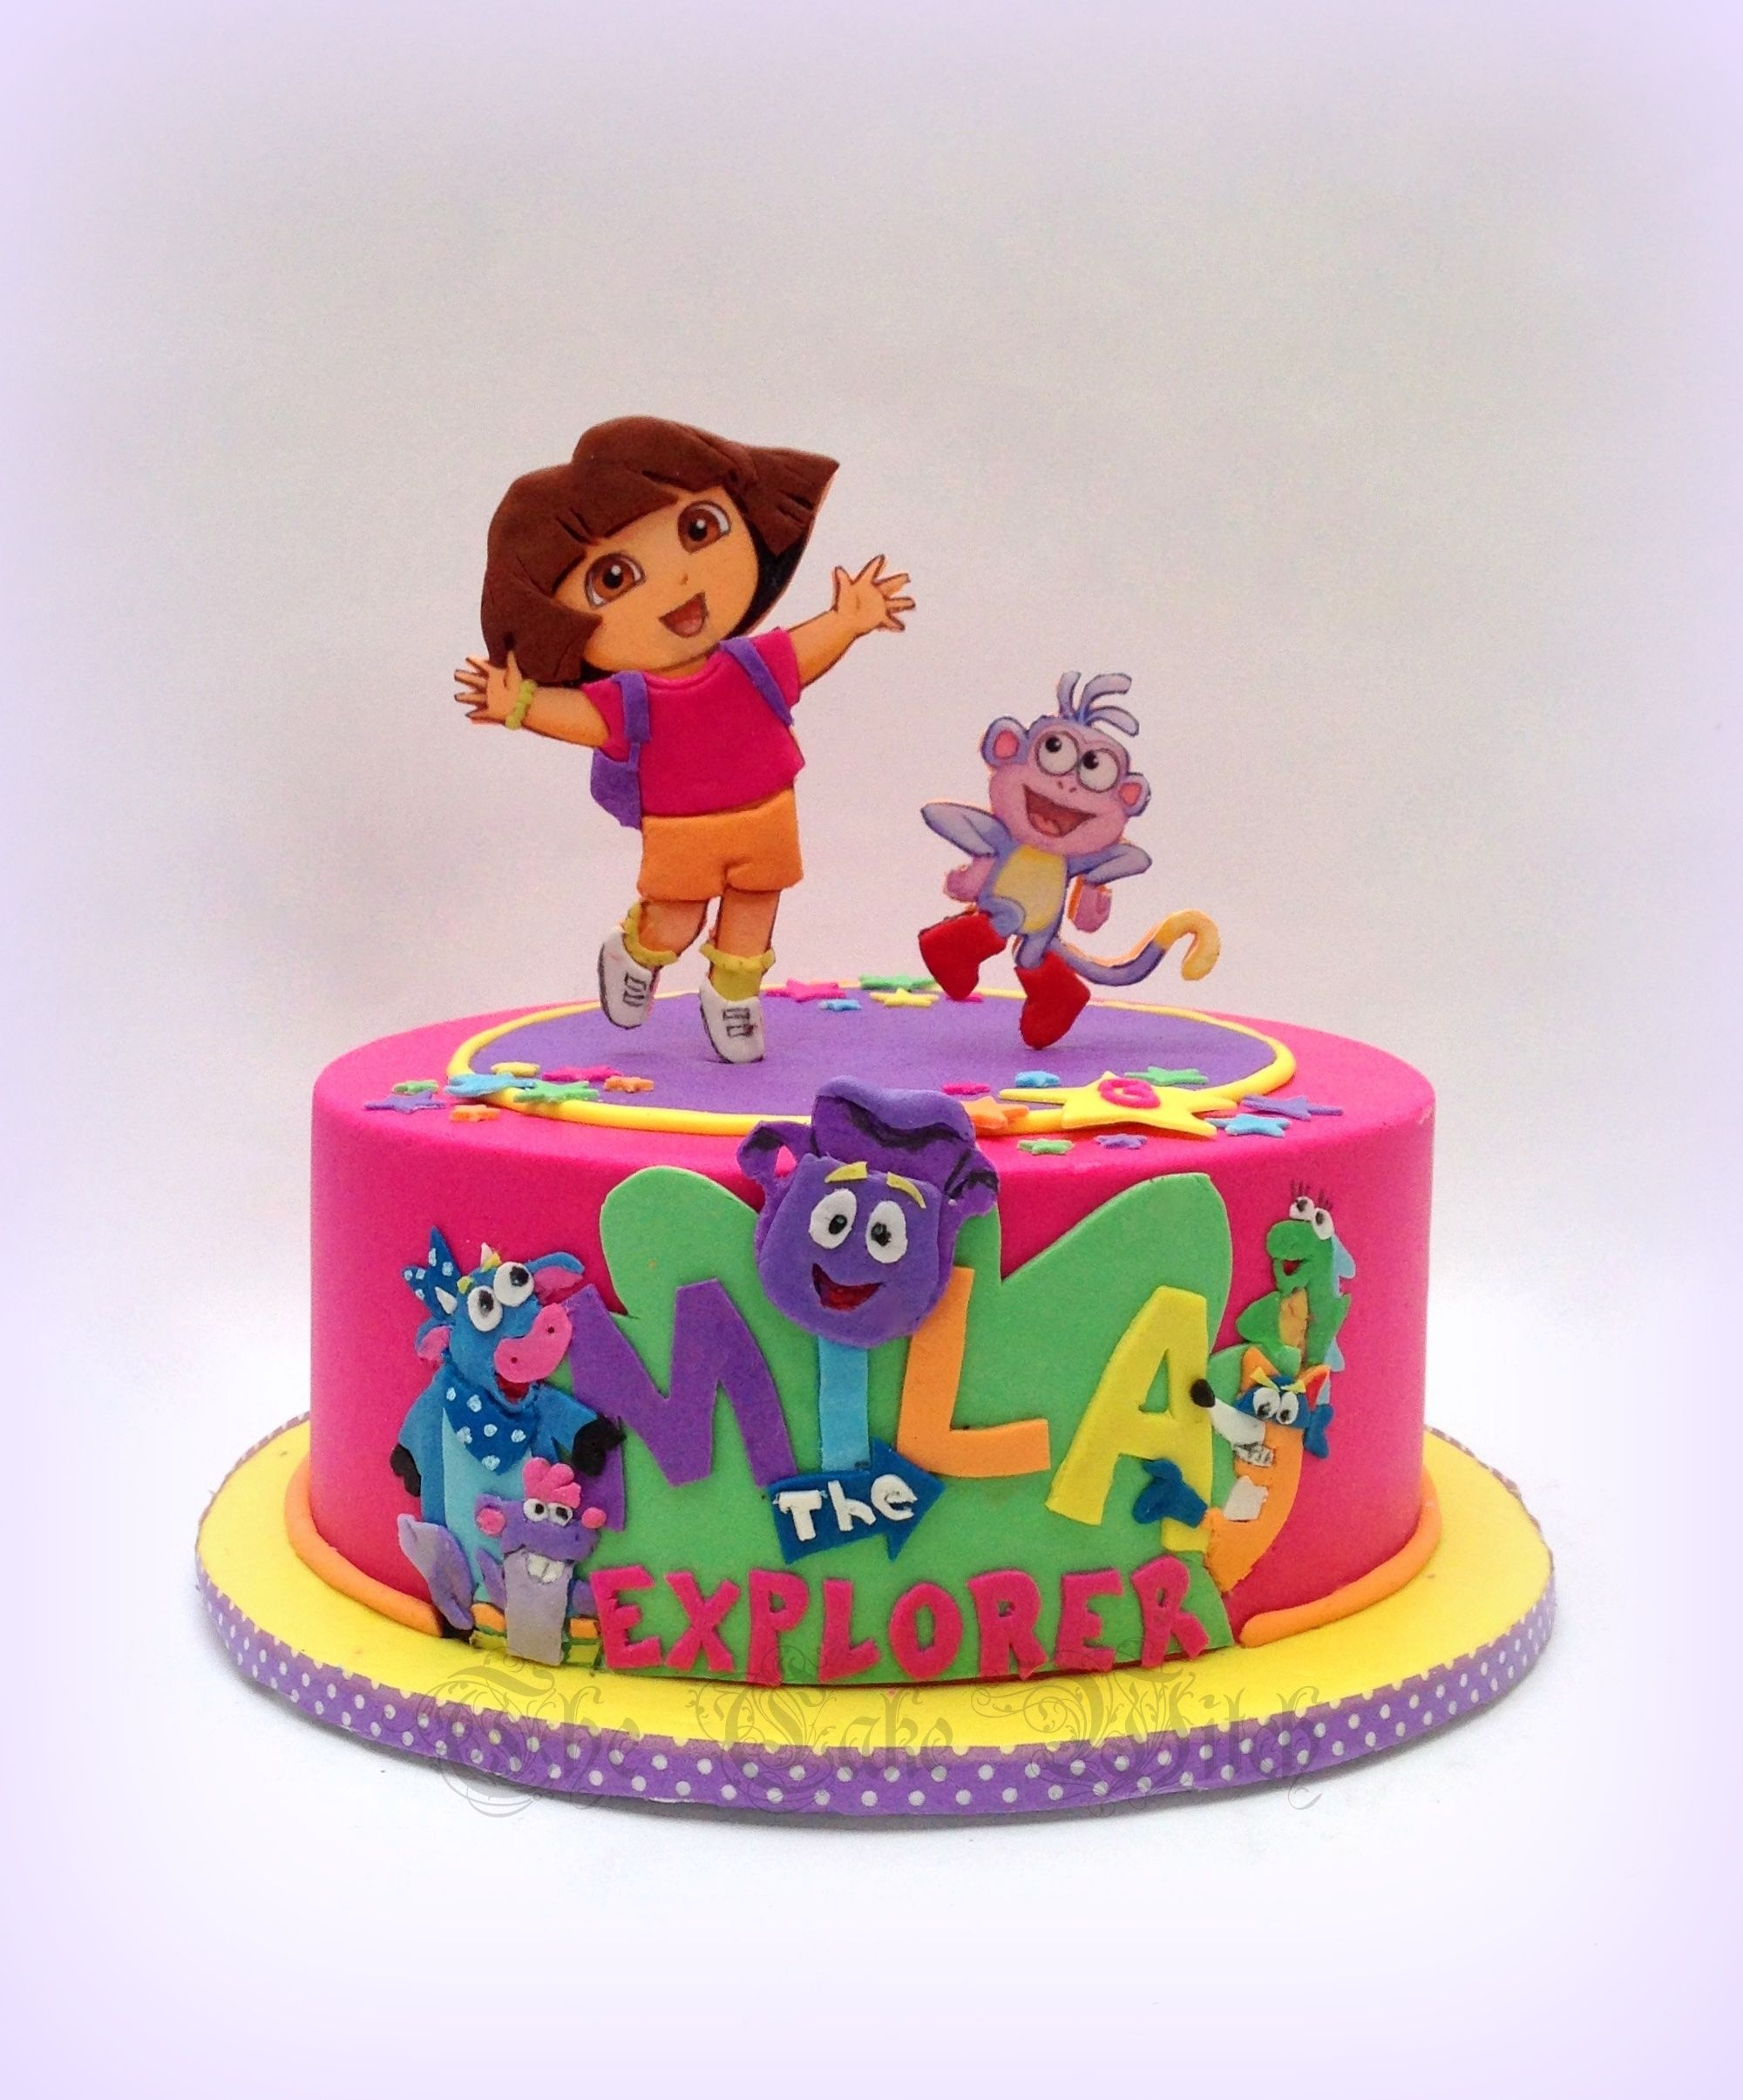 Tremendous Dora The Explorer Birthday Cake With Images Dora Birthday Funny Birthday Cards Online Alyptdamsfinfo